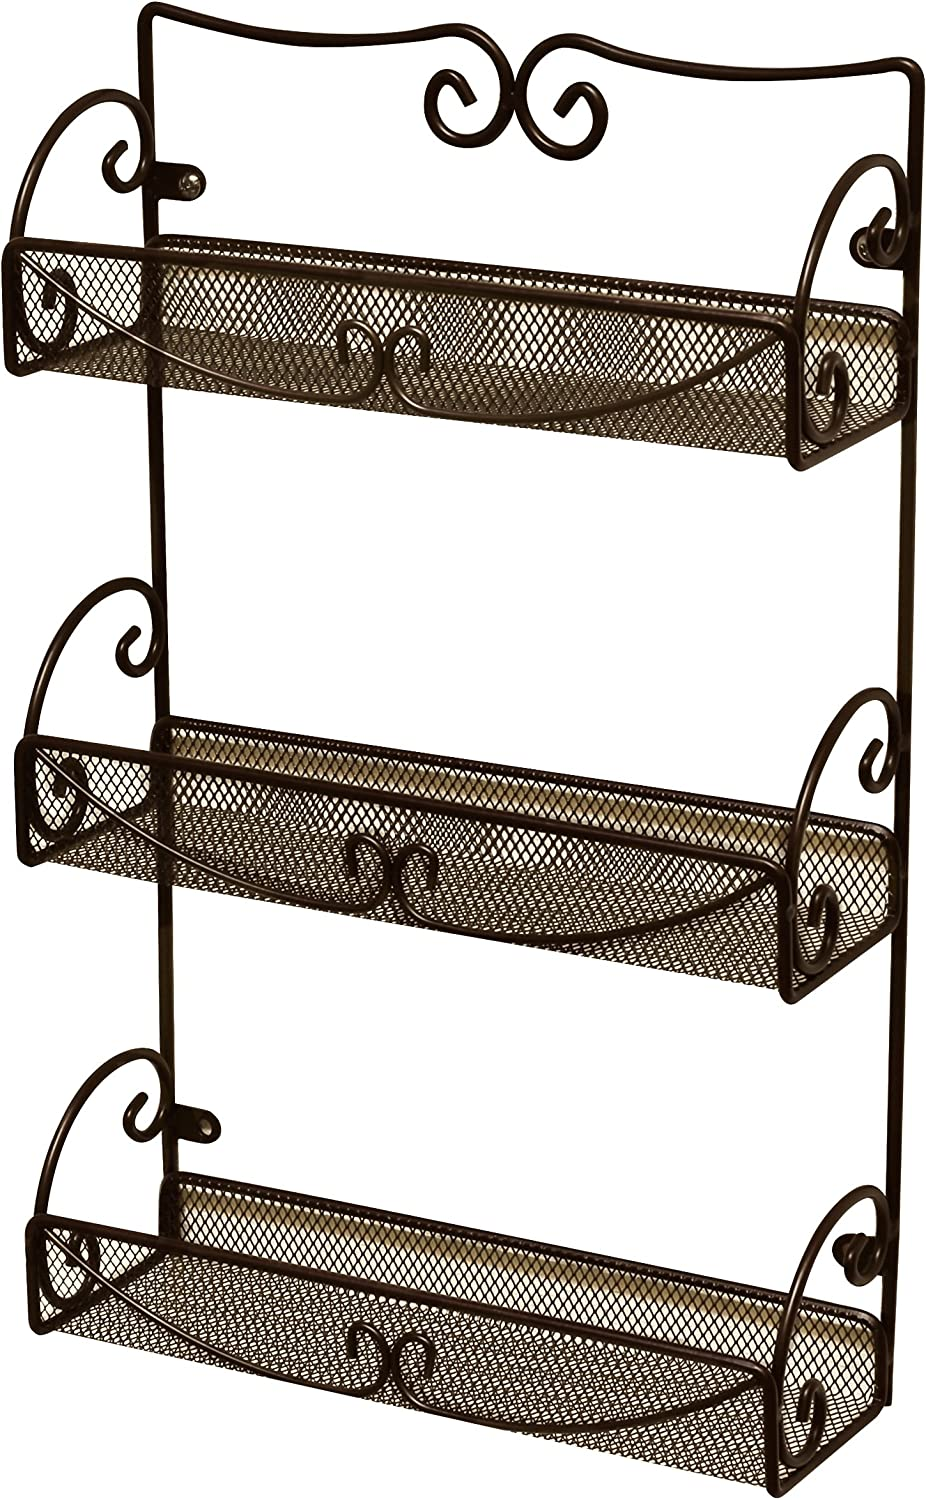 DecoBros 3 Tier Wall Mounted Spice Rack, Bronze: Kitchen & Dining